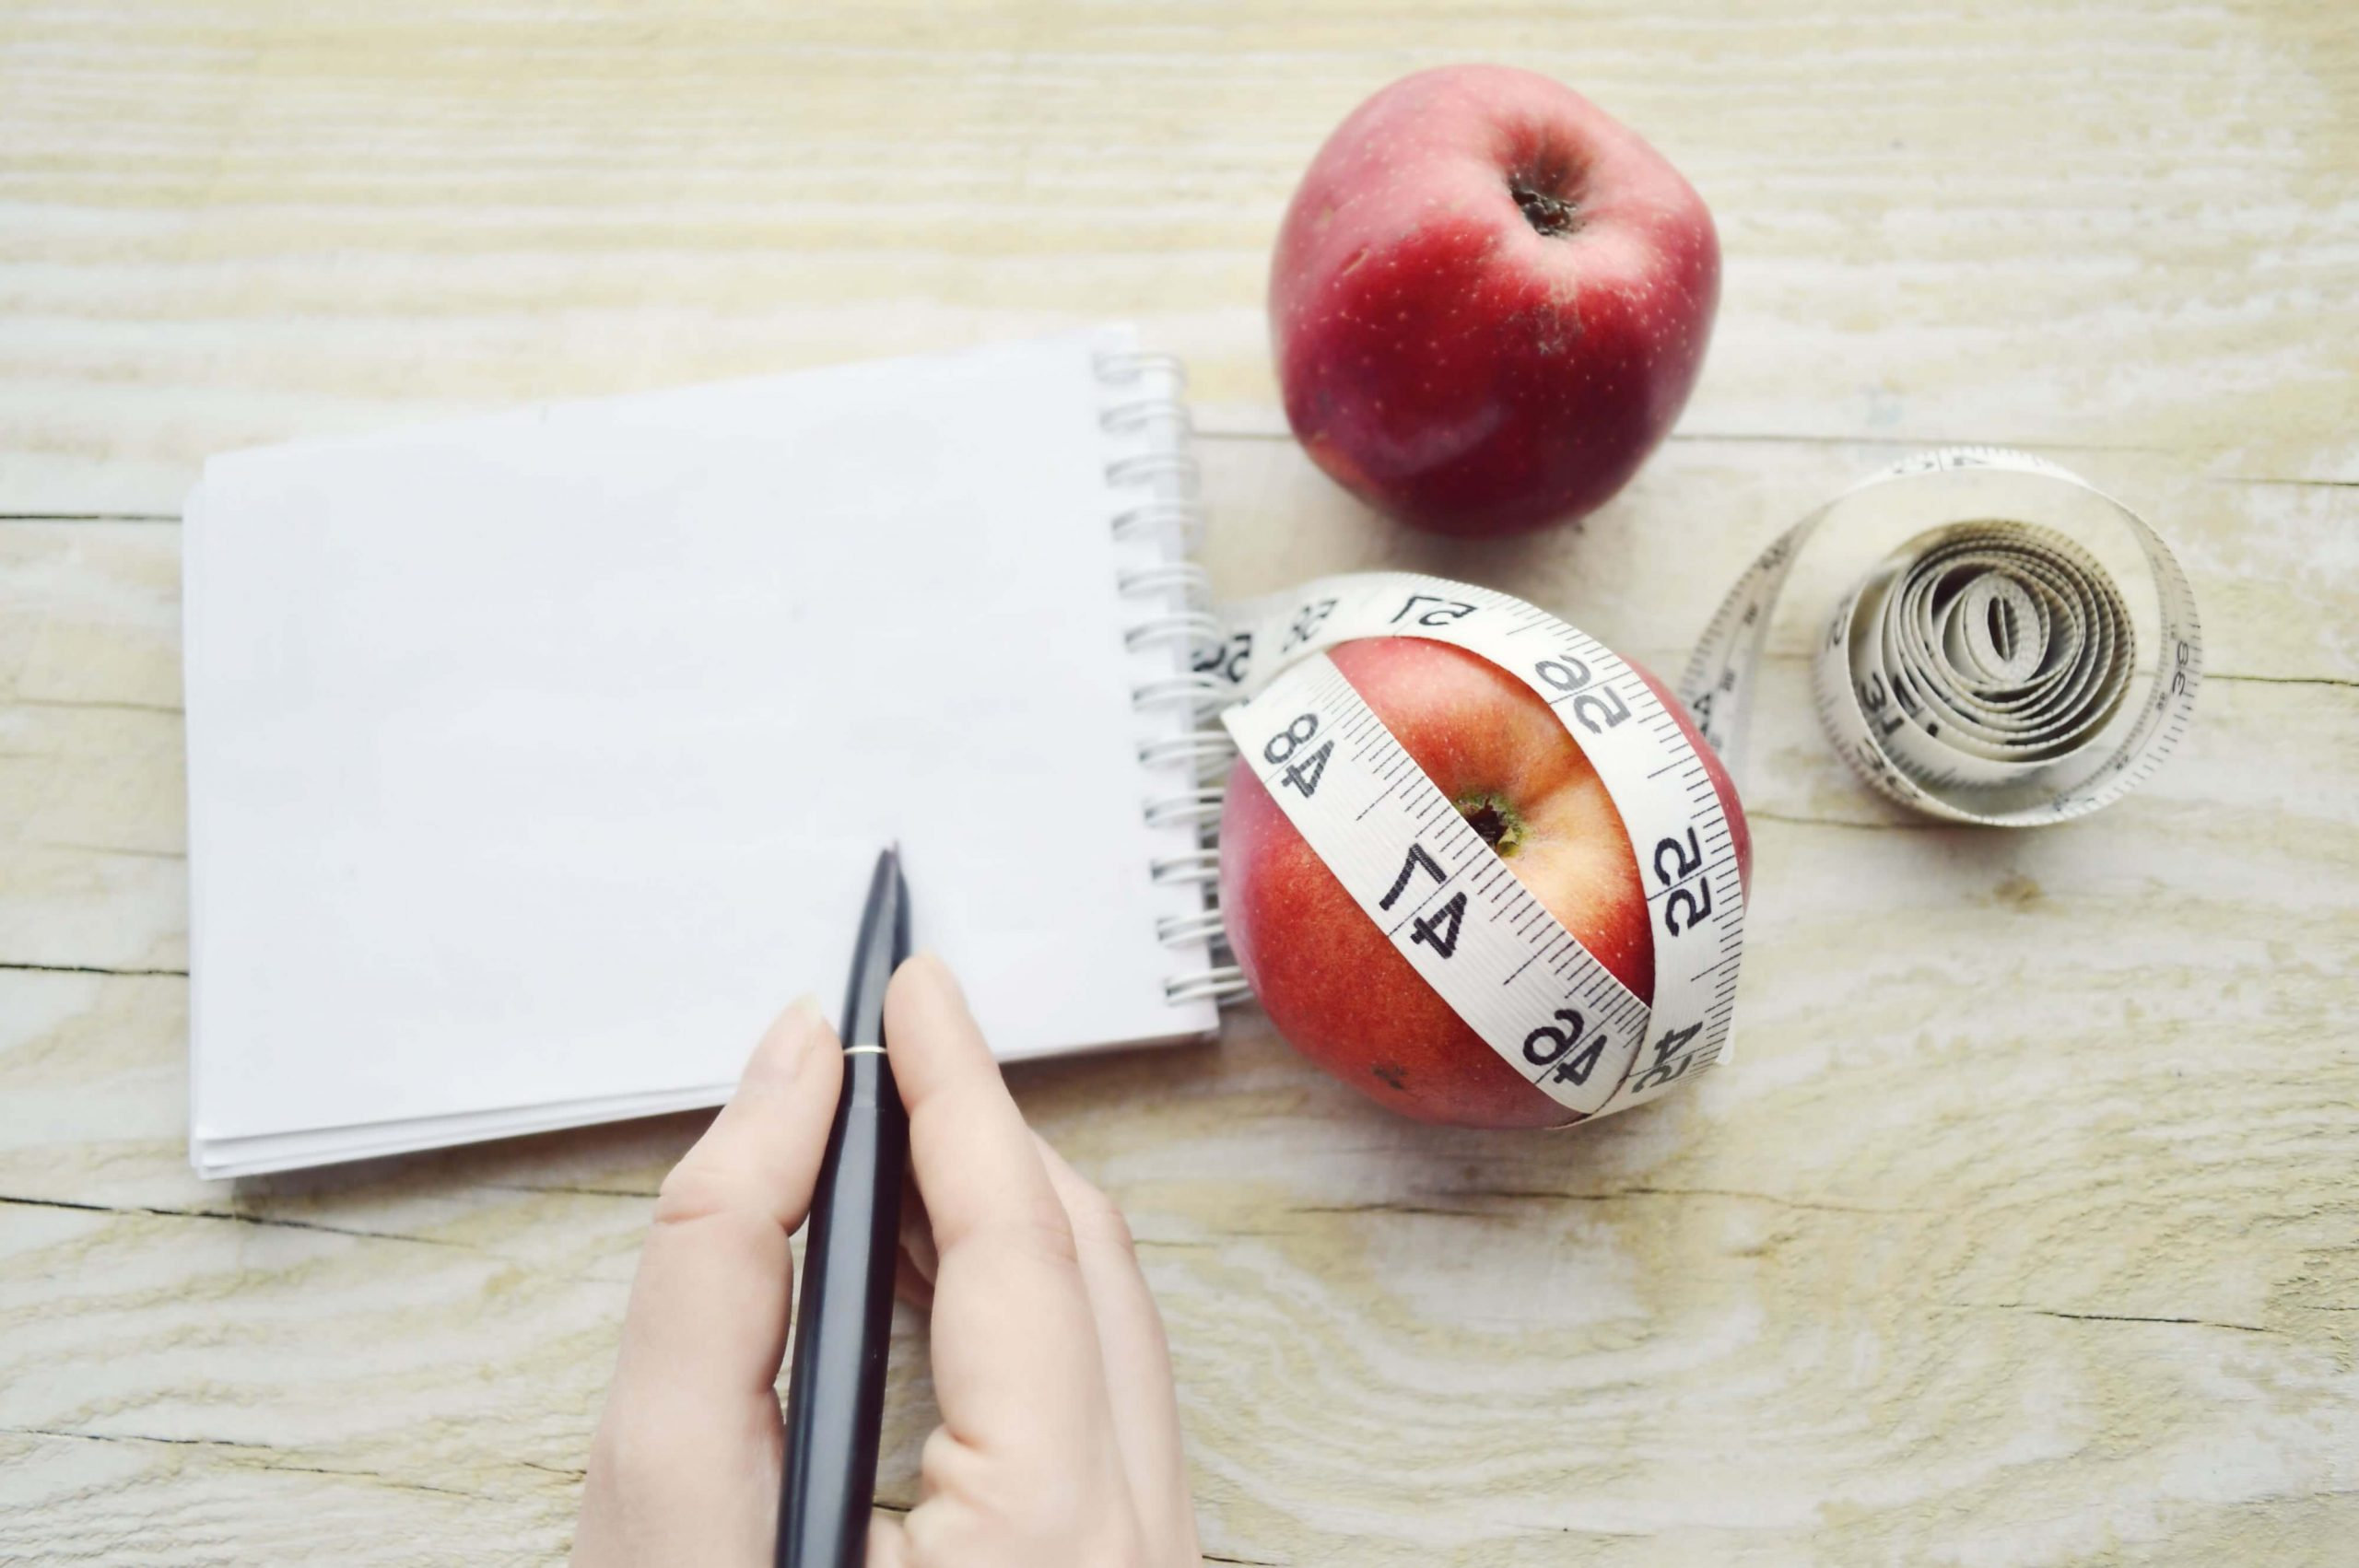 writing health plan with two apples and measuring tape